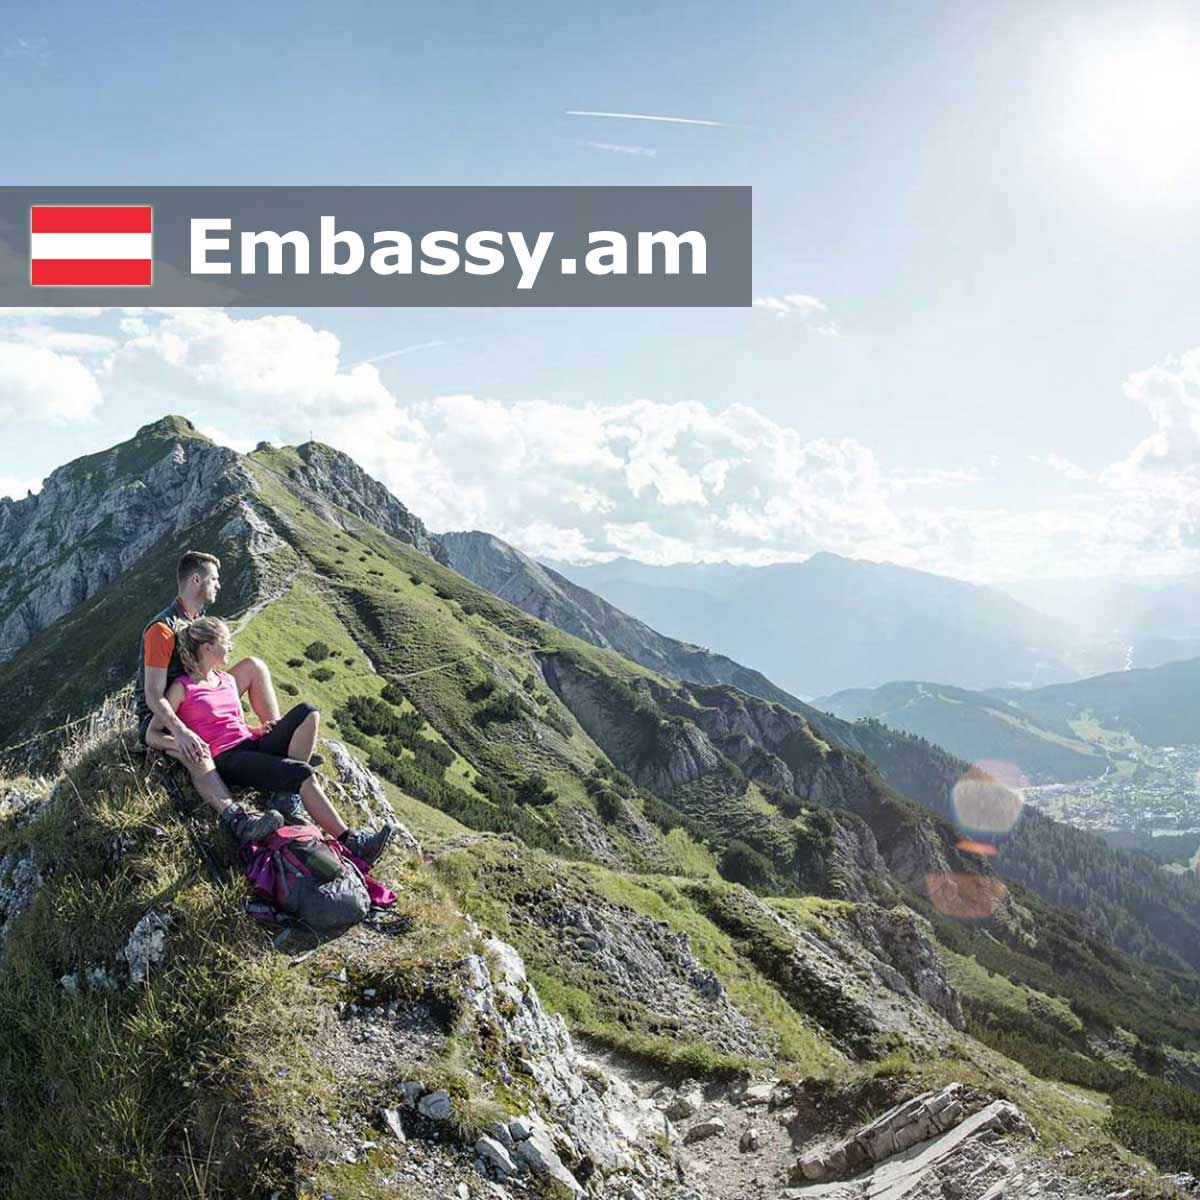 Seefeld in Tirol - Hotels in Austria - Embassy.am